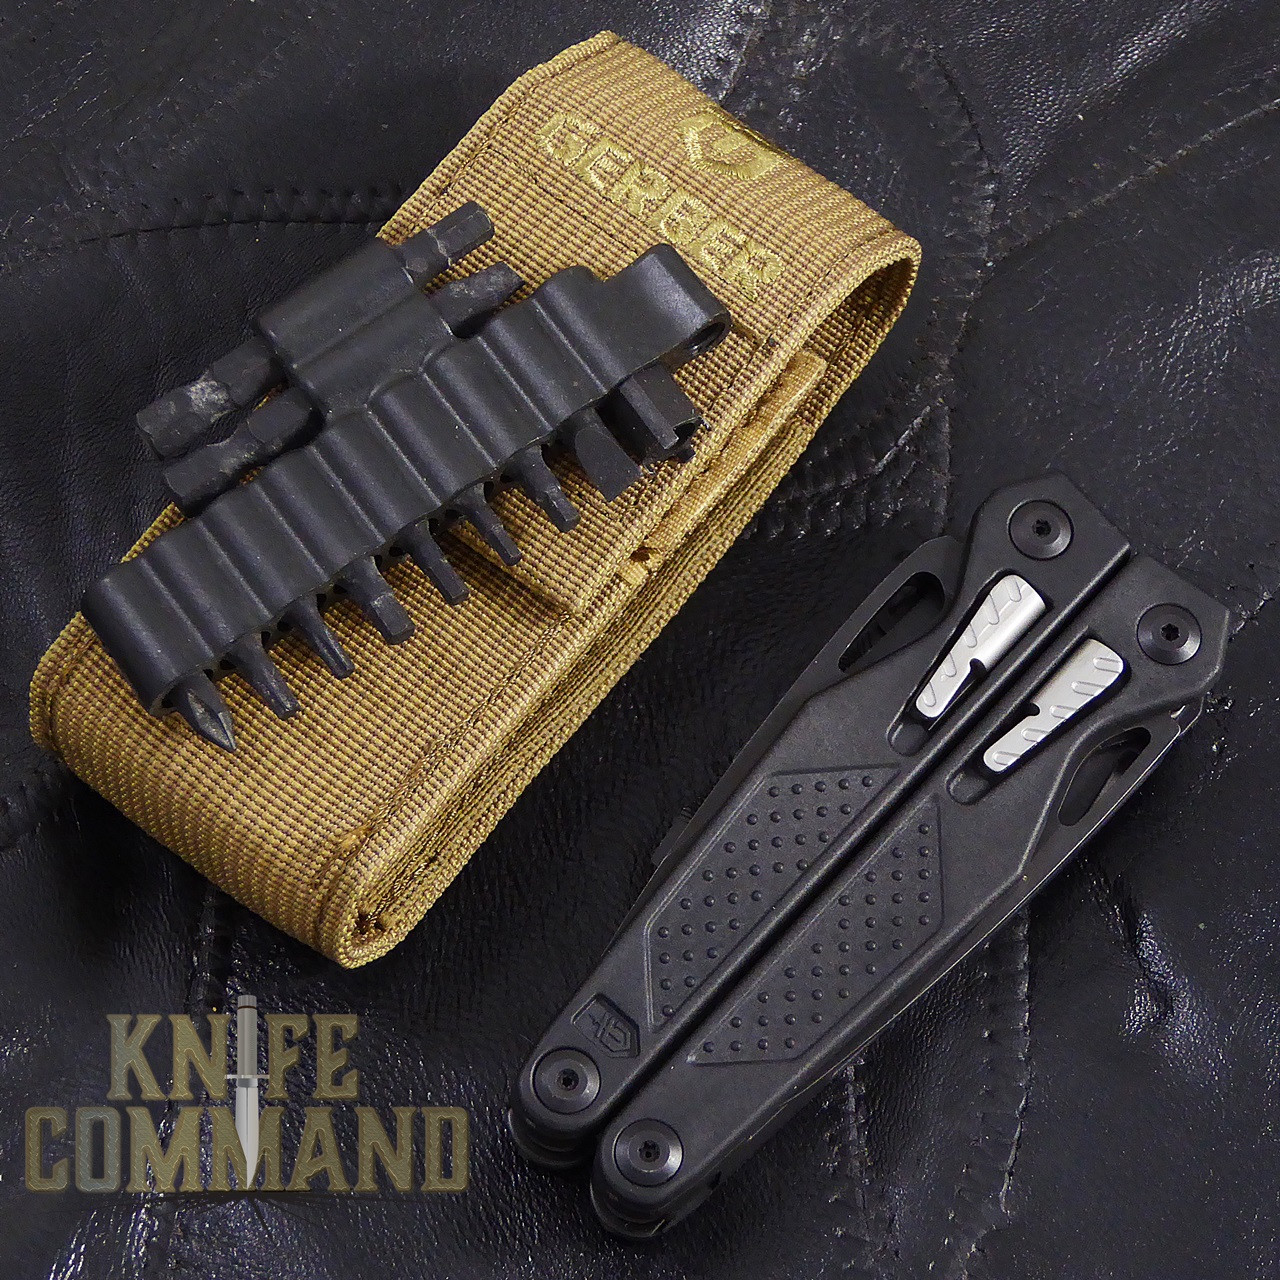 Gerber MP1-MRO Maintenance, Repair, & Operations Tool Butterfly Opening Multi-Tool.  Multi bit set and MOLLE compatible coyote nylon sheath.